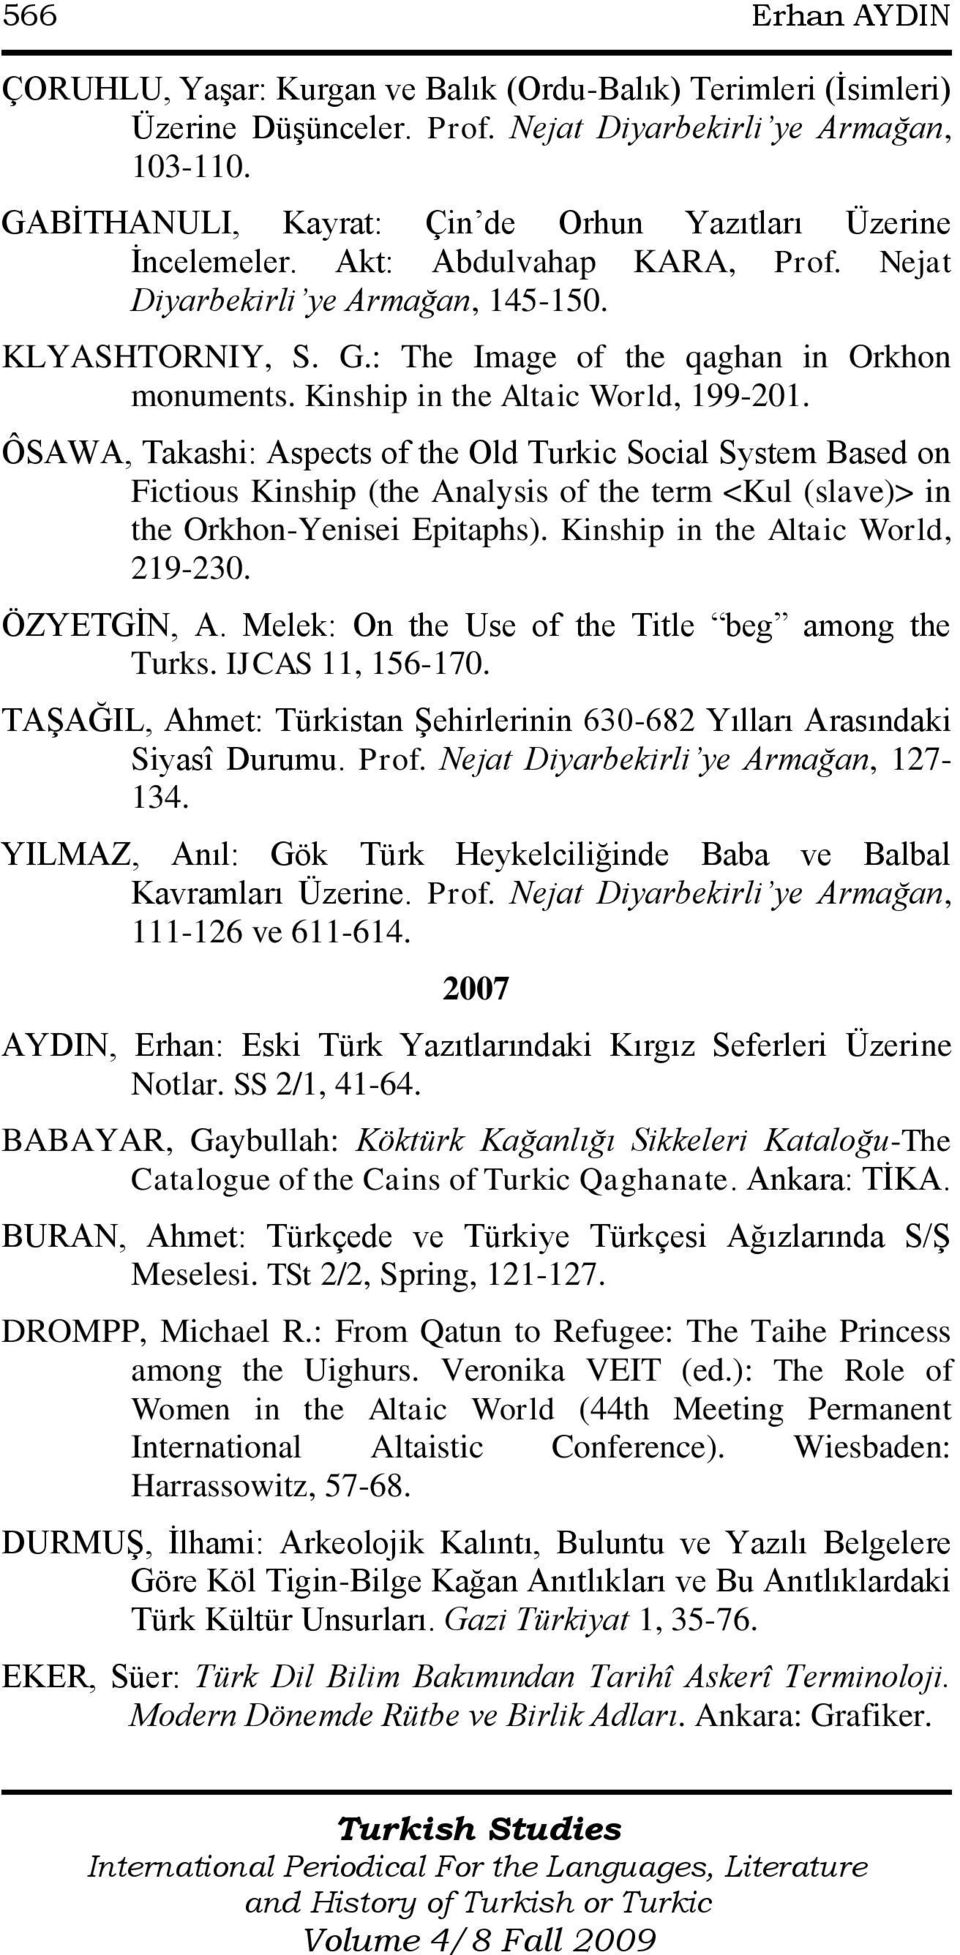 Kinship in the Altaic World, 199-201. ÔSAWA, Takashi: Aspects of the Old Turkic Social System Based on Fictious Kinship (the Analysis of the term <Kul (slave)> in the Orkhon-Yenisei Epitaphs).